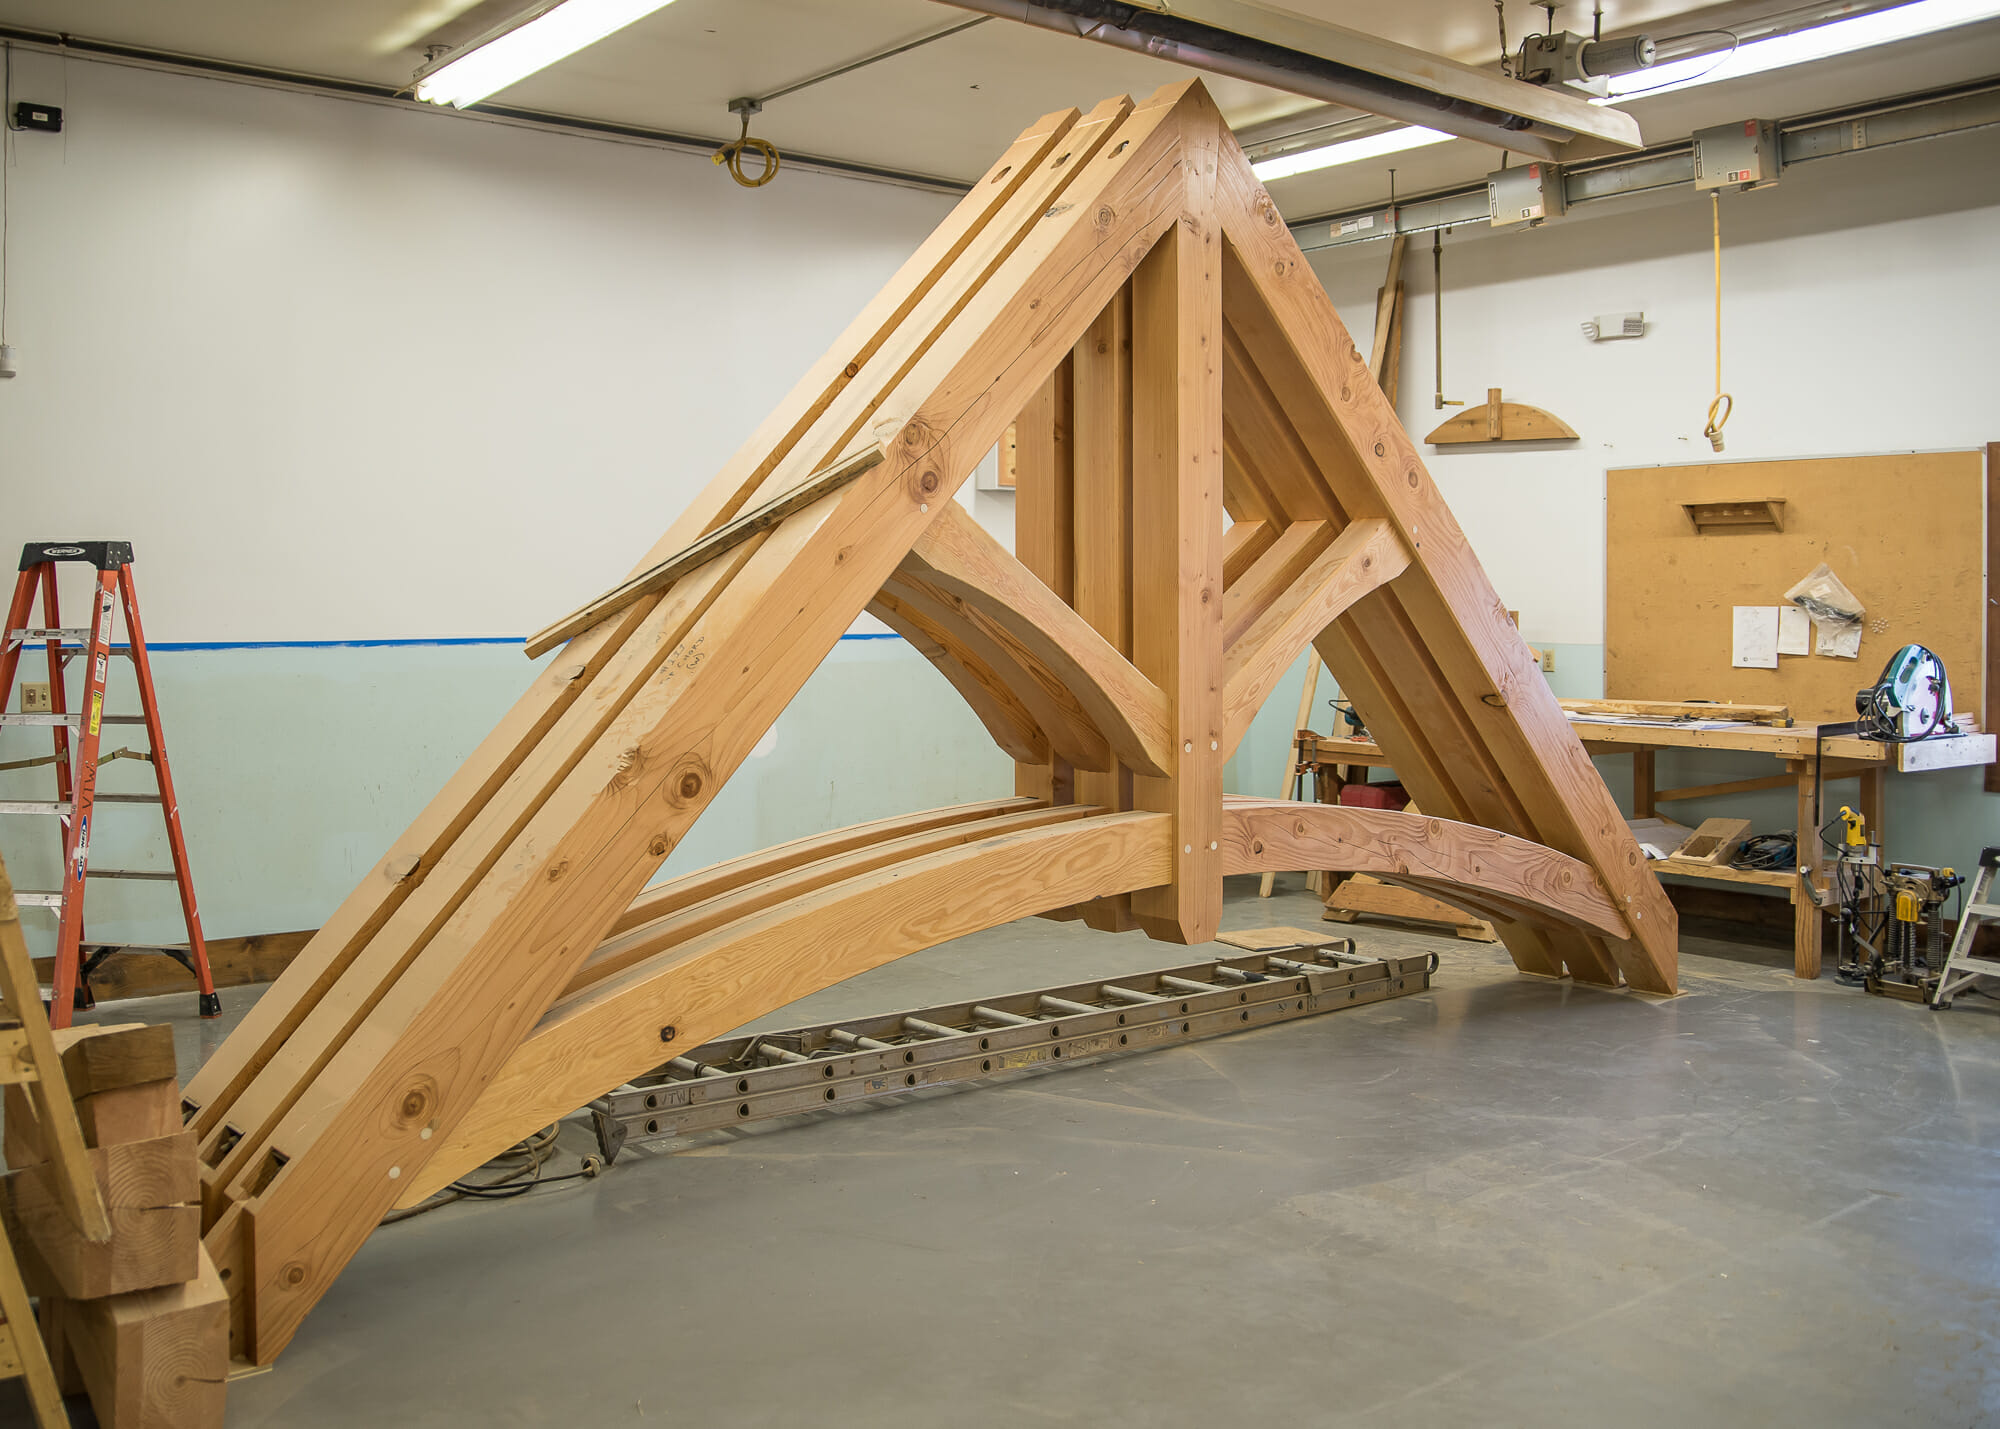 King post trusses timber frame design wood ceiling beams for Timber trusses for sale